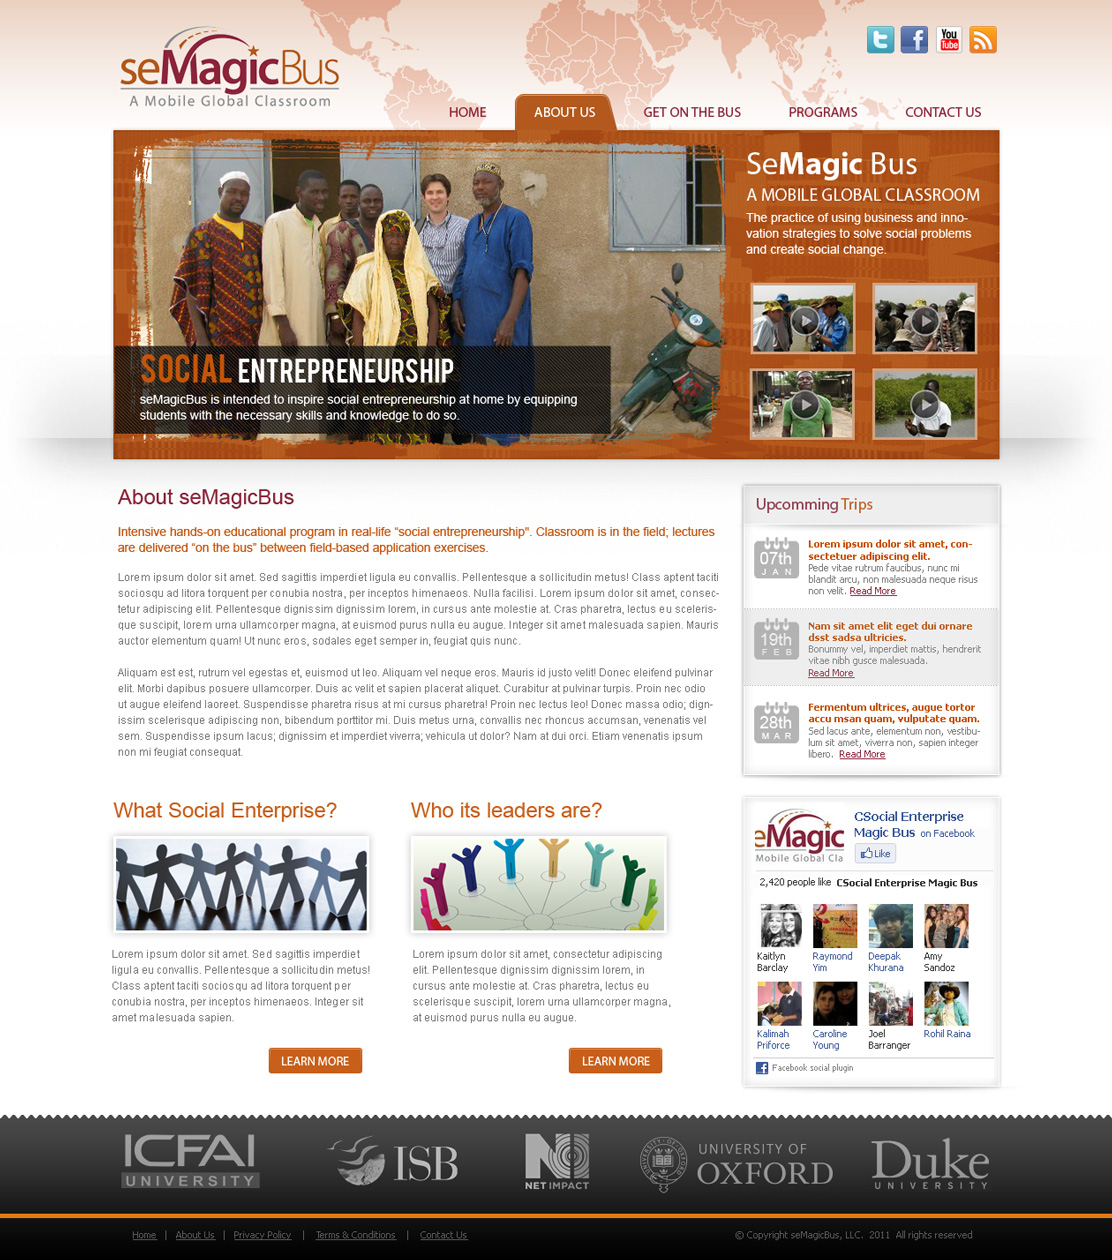 Web Page Design by Emad A Zyed - Entry No. 44 in the Web Page Design Contest seMagicBus Website.